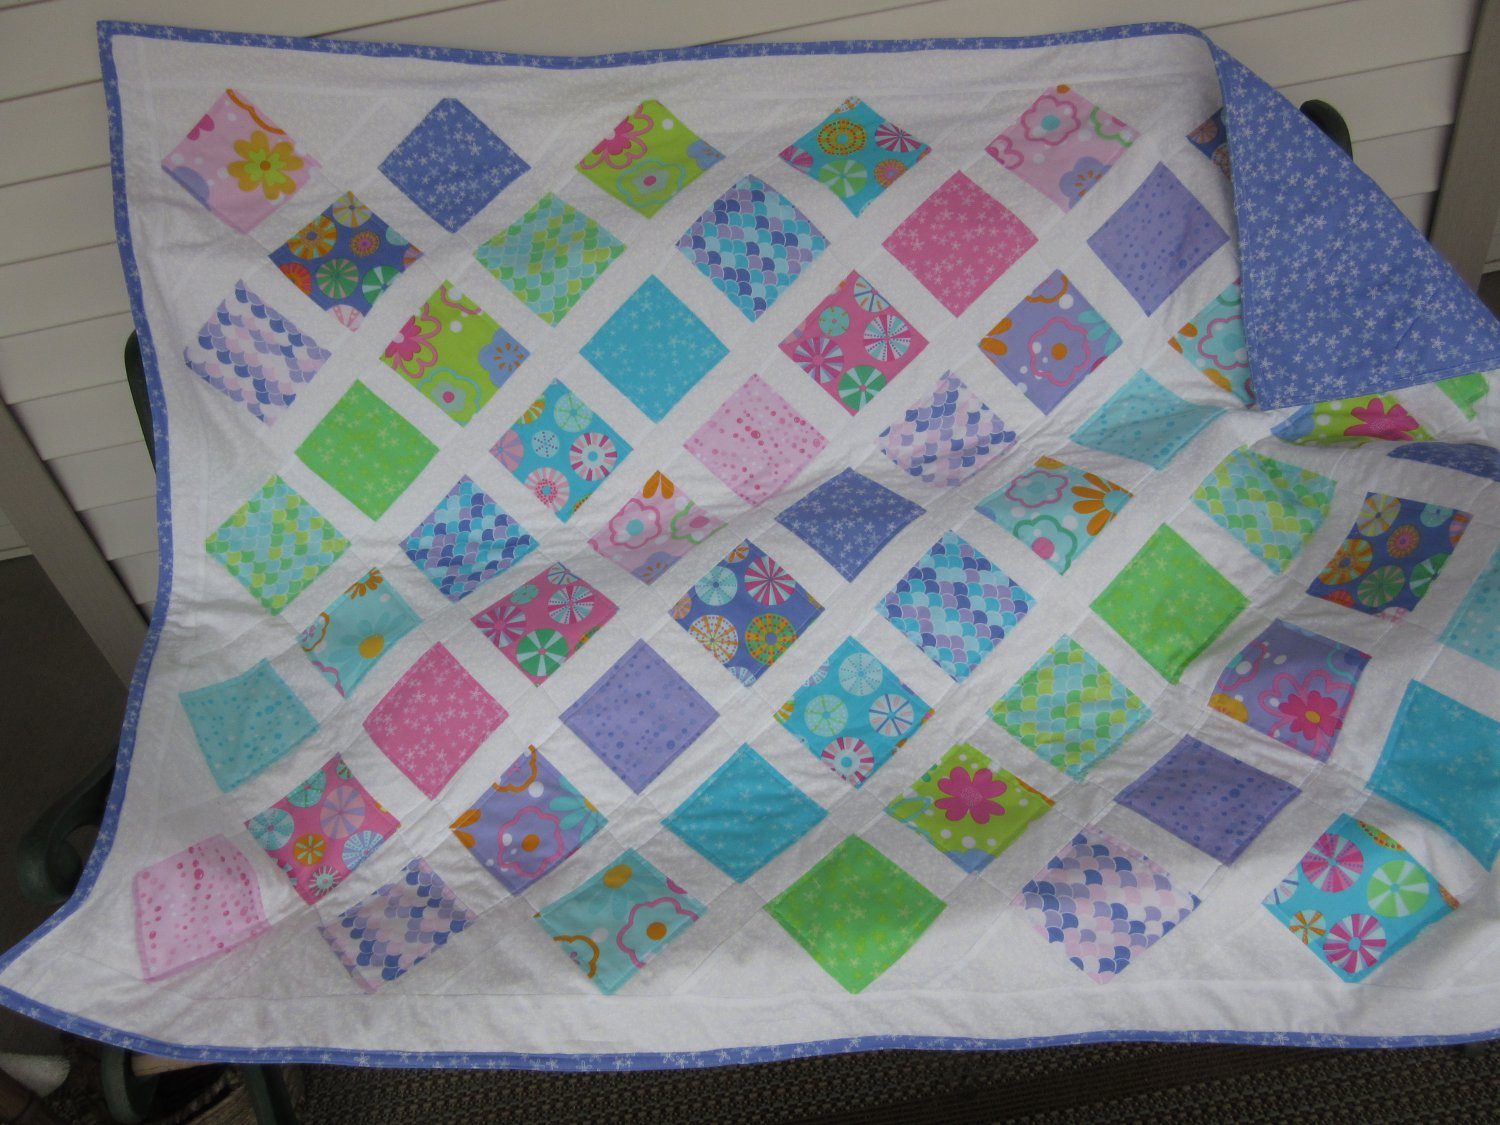 Pastel Diagonal Design Pieced Cotton Patchwork Lap Quilt in Pastels with White on White Floral Print